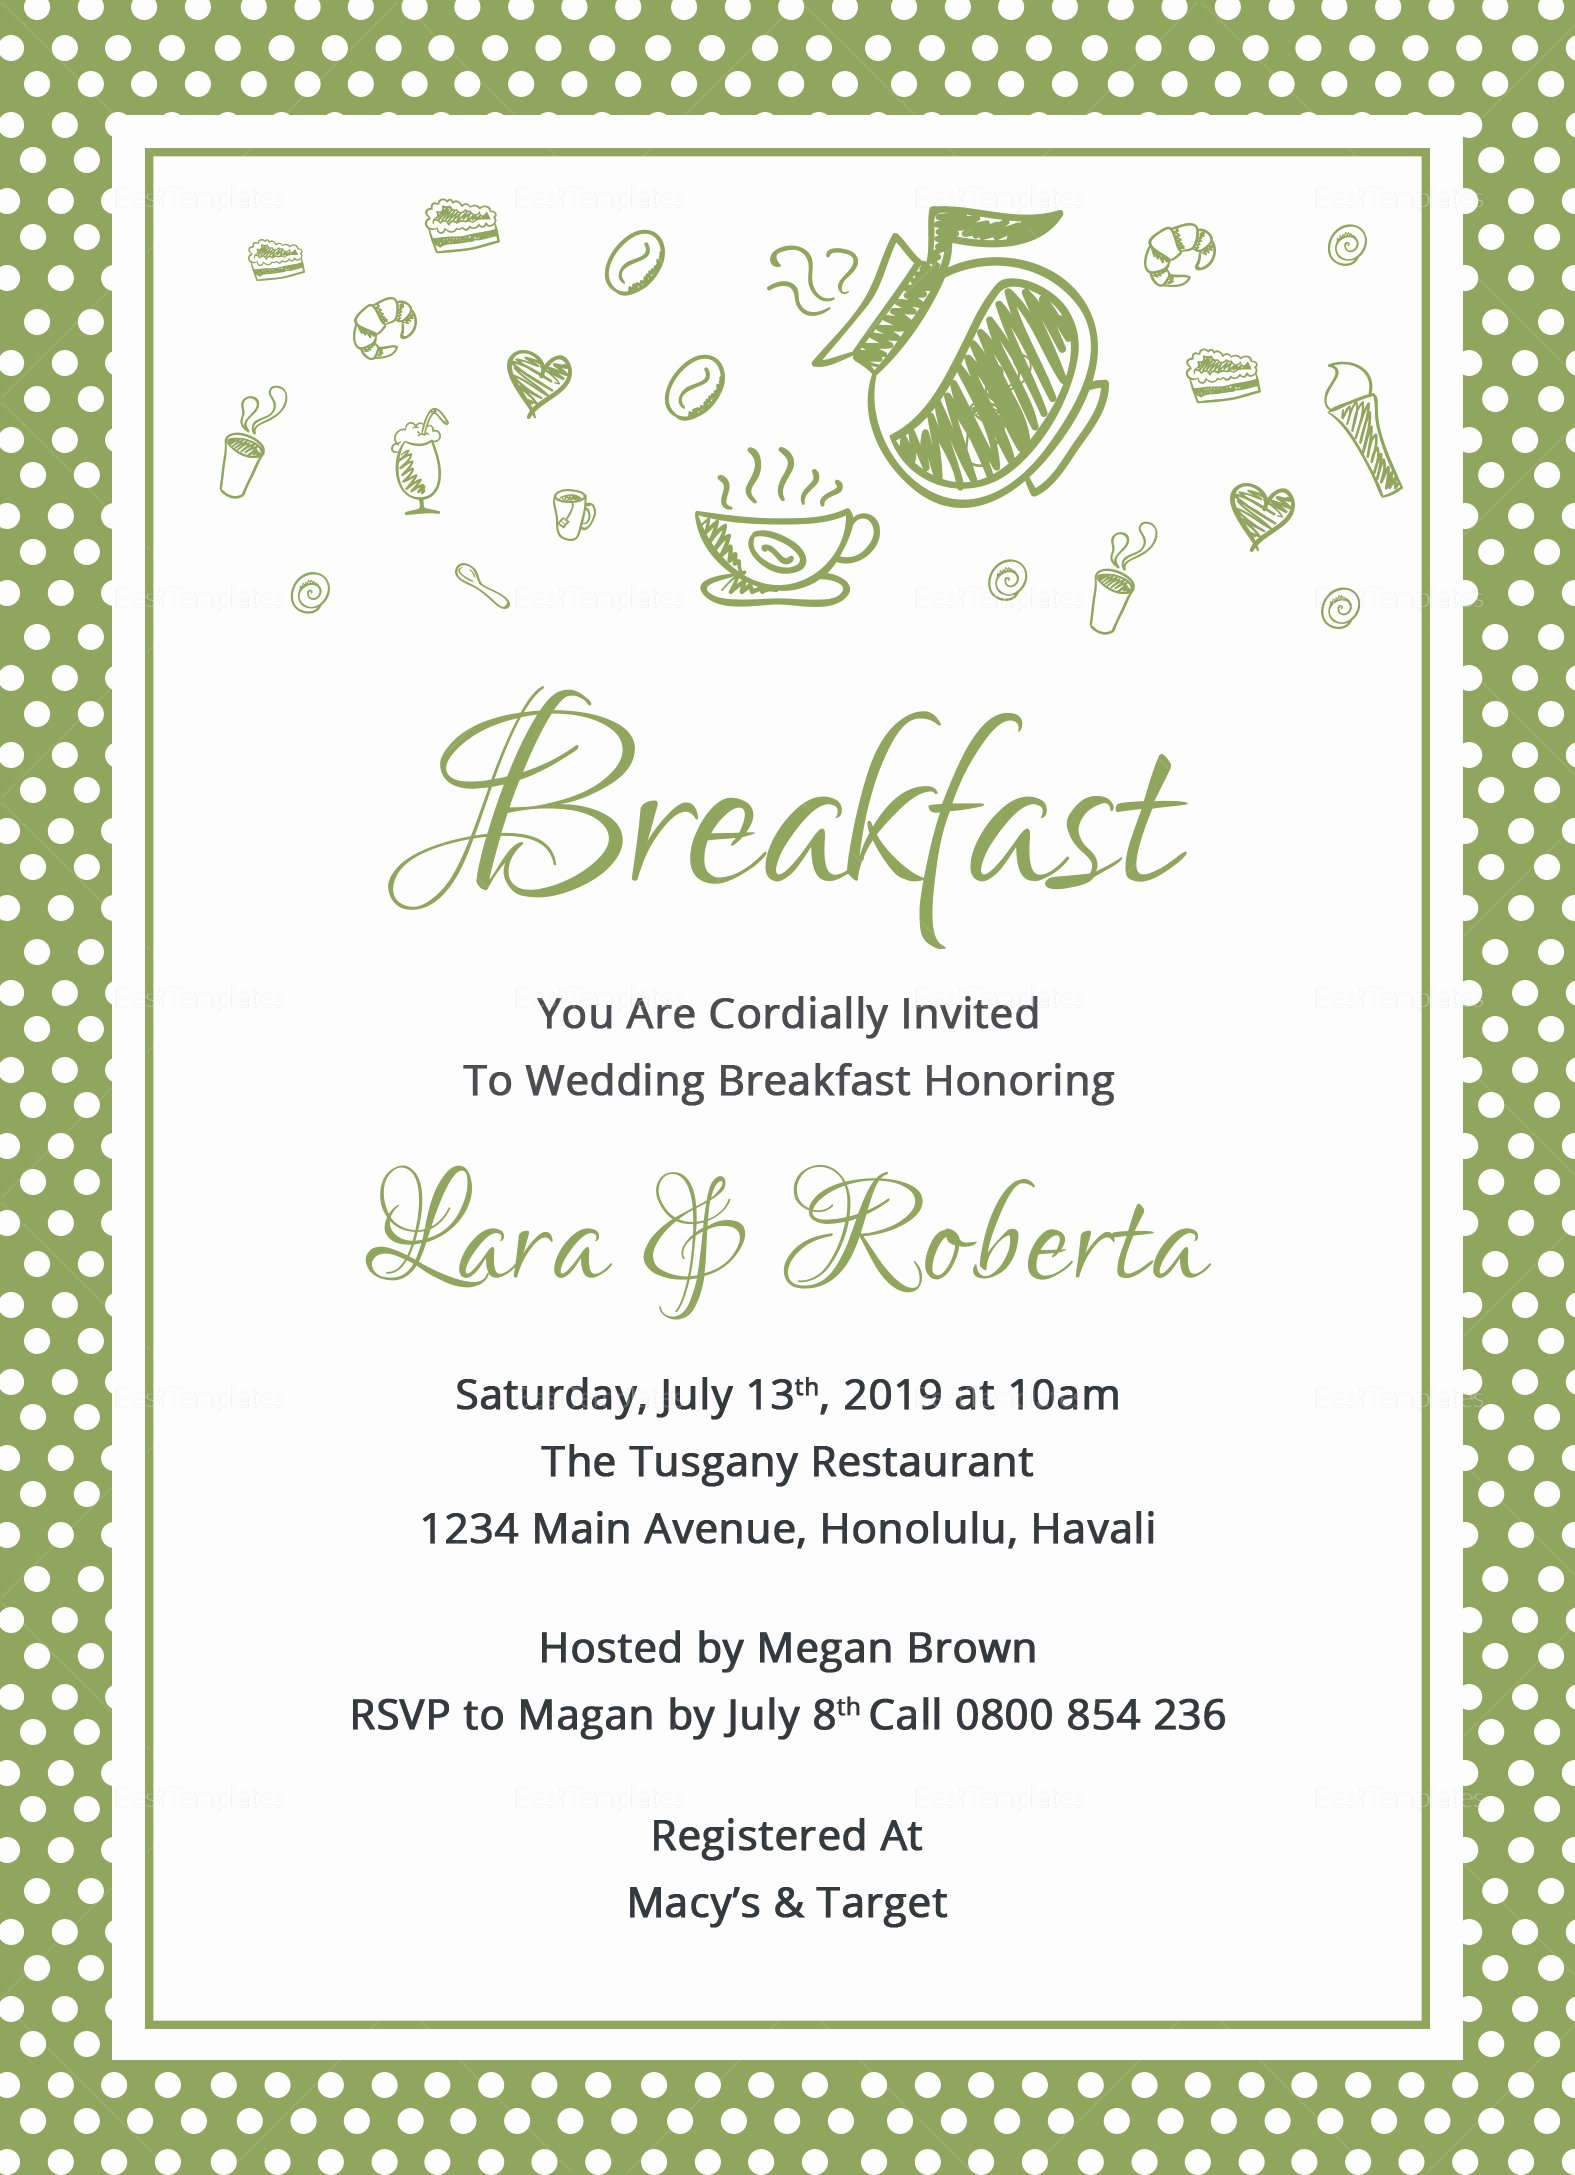 Brunch Invitation Template Free Fresh Printable Breakfast Invitation Design Template In Word